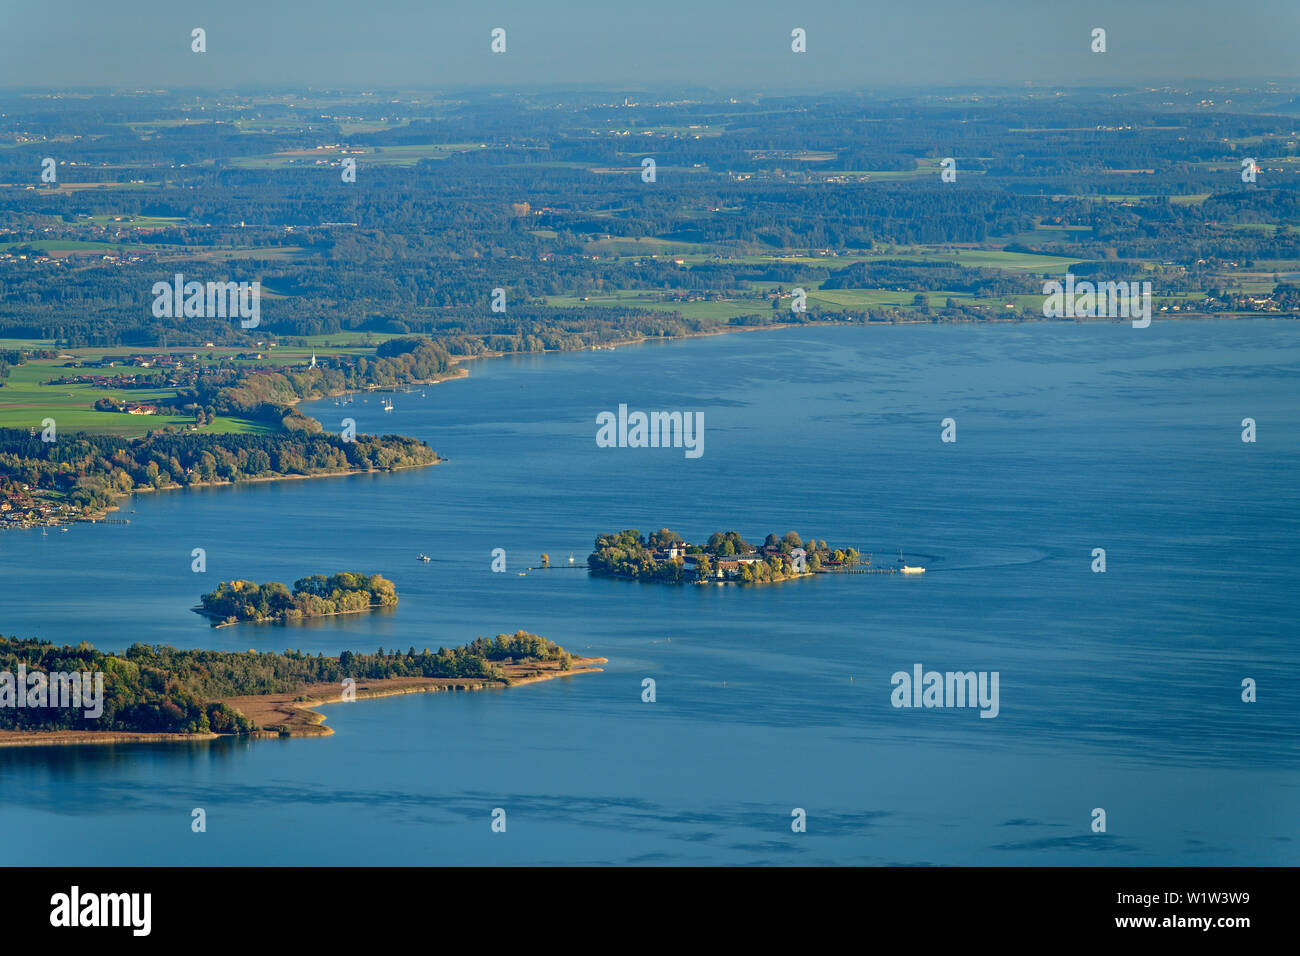 Lake Chiemsee with islands of Herreninsel, Krautinsel and Fraueninsel, from Gedererwand, Kampenwand, Chiemgau Alps, Chiemgau, Upper Bavaria, Bavaria, - Stock Image